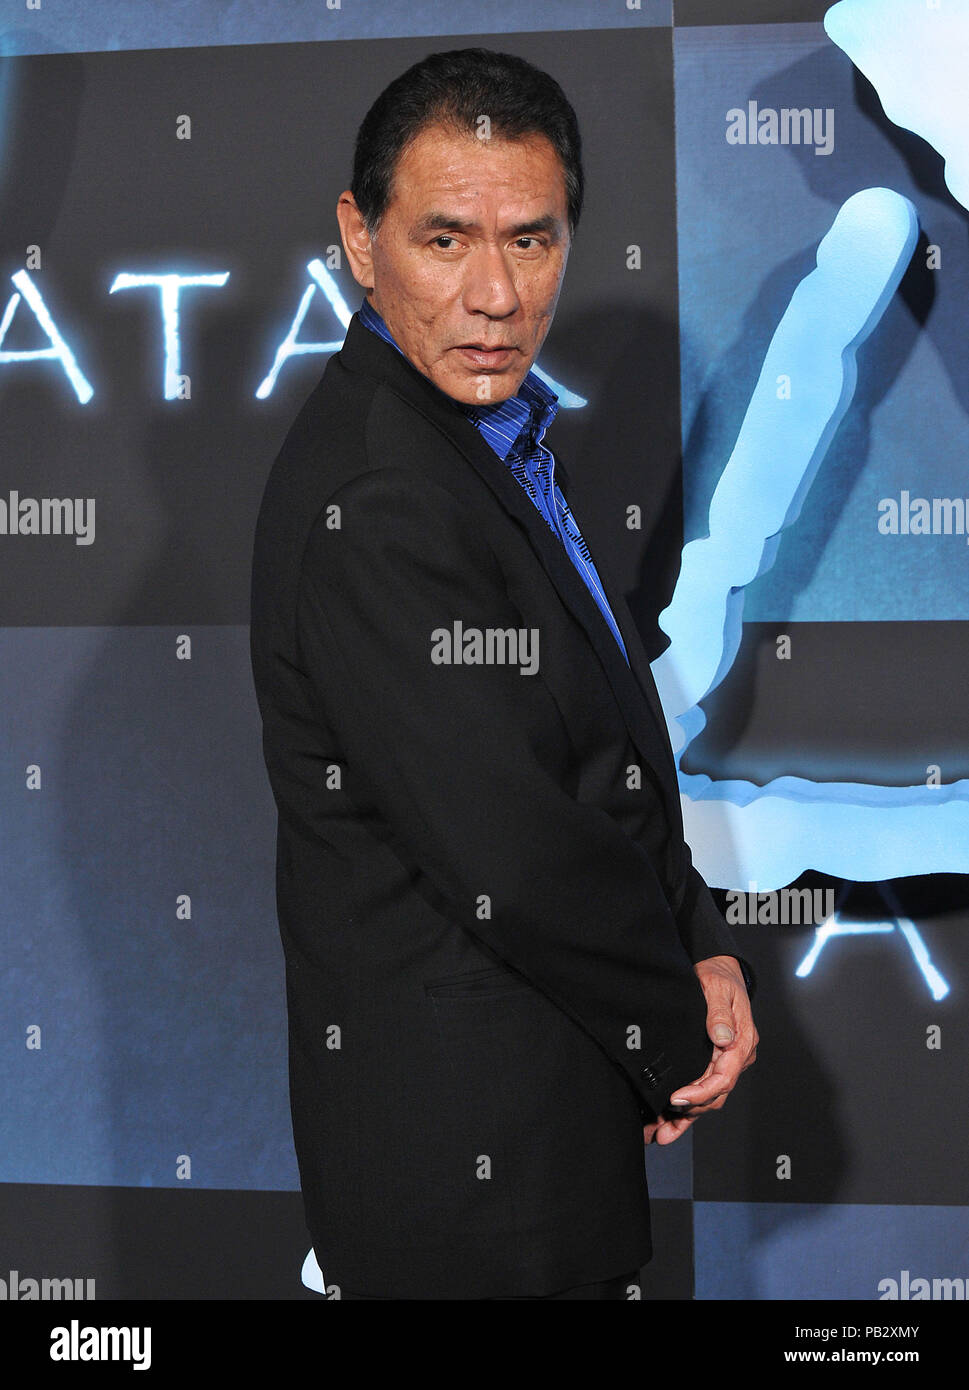 Wes Studi _82  - Avatar Los Angeles Premiere at the Chinese Theatre In Los Angeles.Wes Studi _82 Red Carpet Event, Vertical, USA, Film Industry, Celebrities,  Photography, Bestof, Arts Culture and Entertainment, Topix Celebrities fashion /  Vertical, Best of, Event in Hollywood Life - California,  Red Carpet and backstage, USA, Film Industry, Celebrities,  movie celebrities, TV celebrities, Music celebrities, Photography, Bestof, Arts Culture and Entertainment,  Topix, vertical, one person,, from the years , 2006 to 2009, inquiry tsuni@Gamma-USA.com - Three Quarters - Stock Image